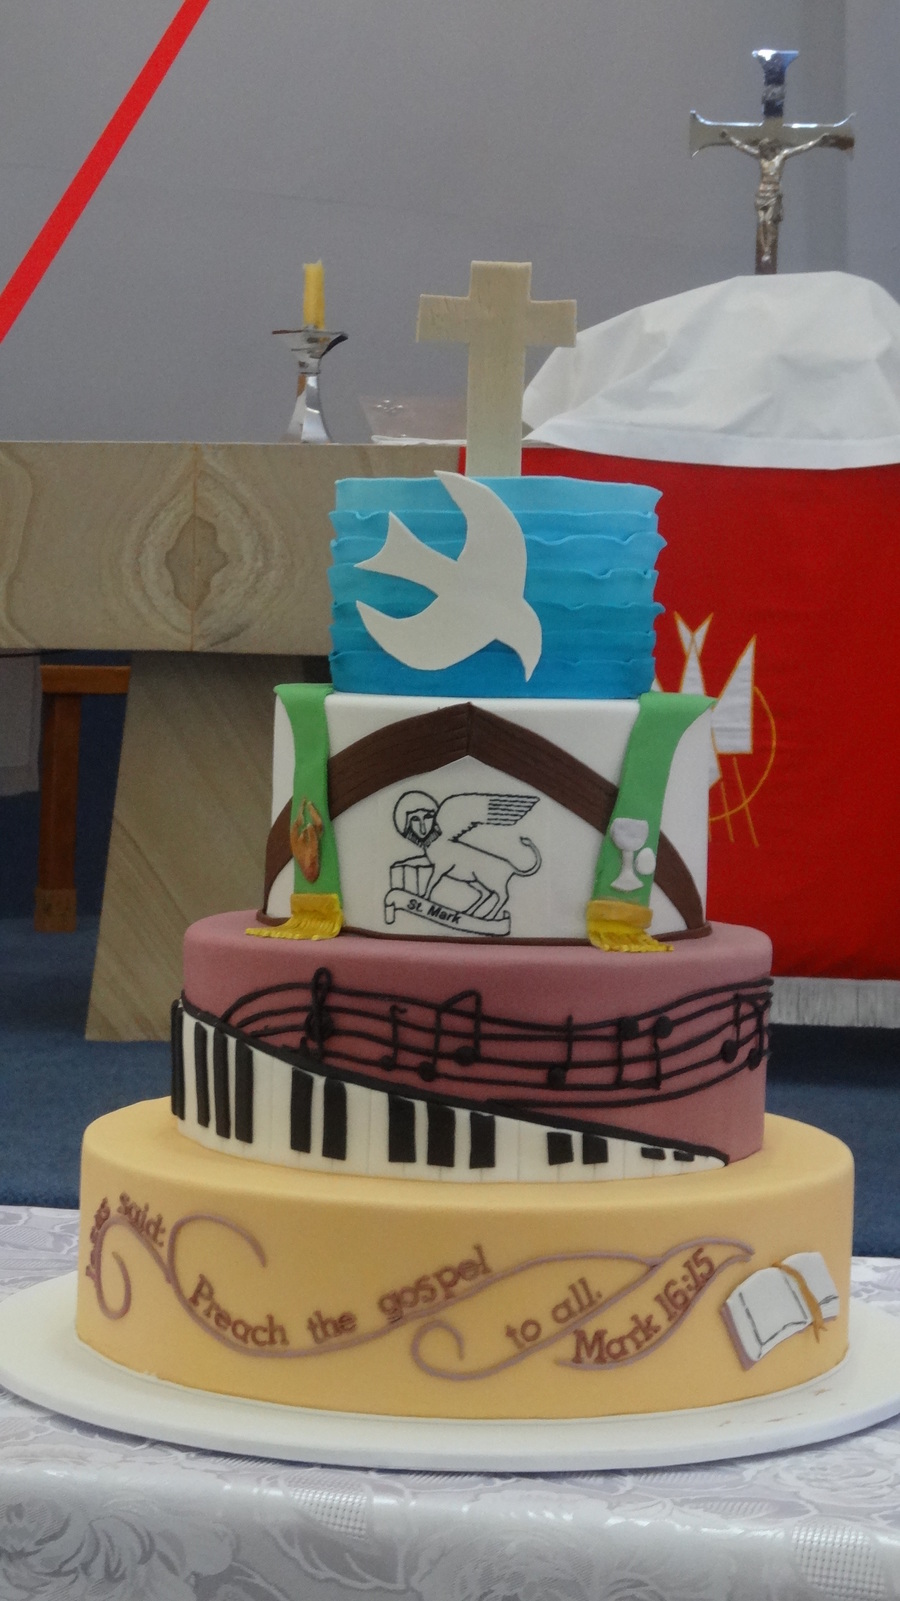 A Cake For Our Churchs 40Th Anniversary Each Tier Was Designed To Reflect An Aspect Of The Life Of The Church The Second Tier From The To on Cake Central